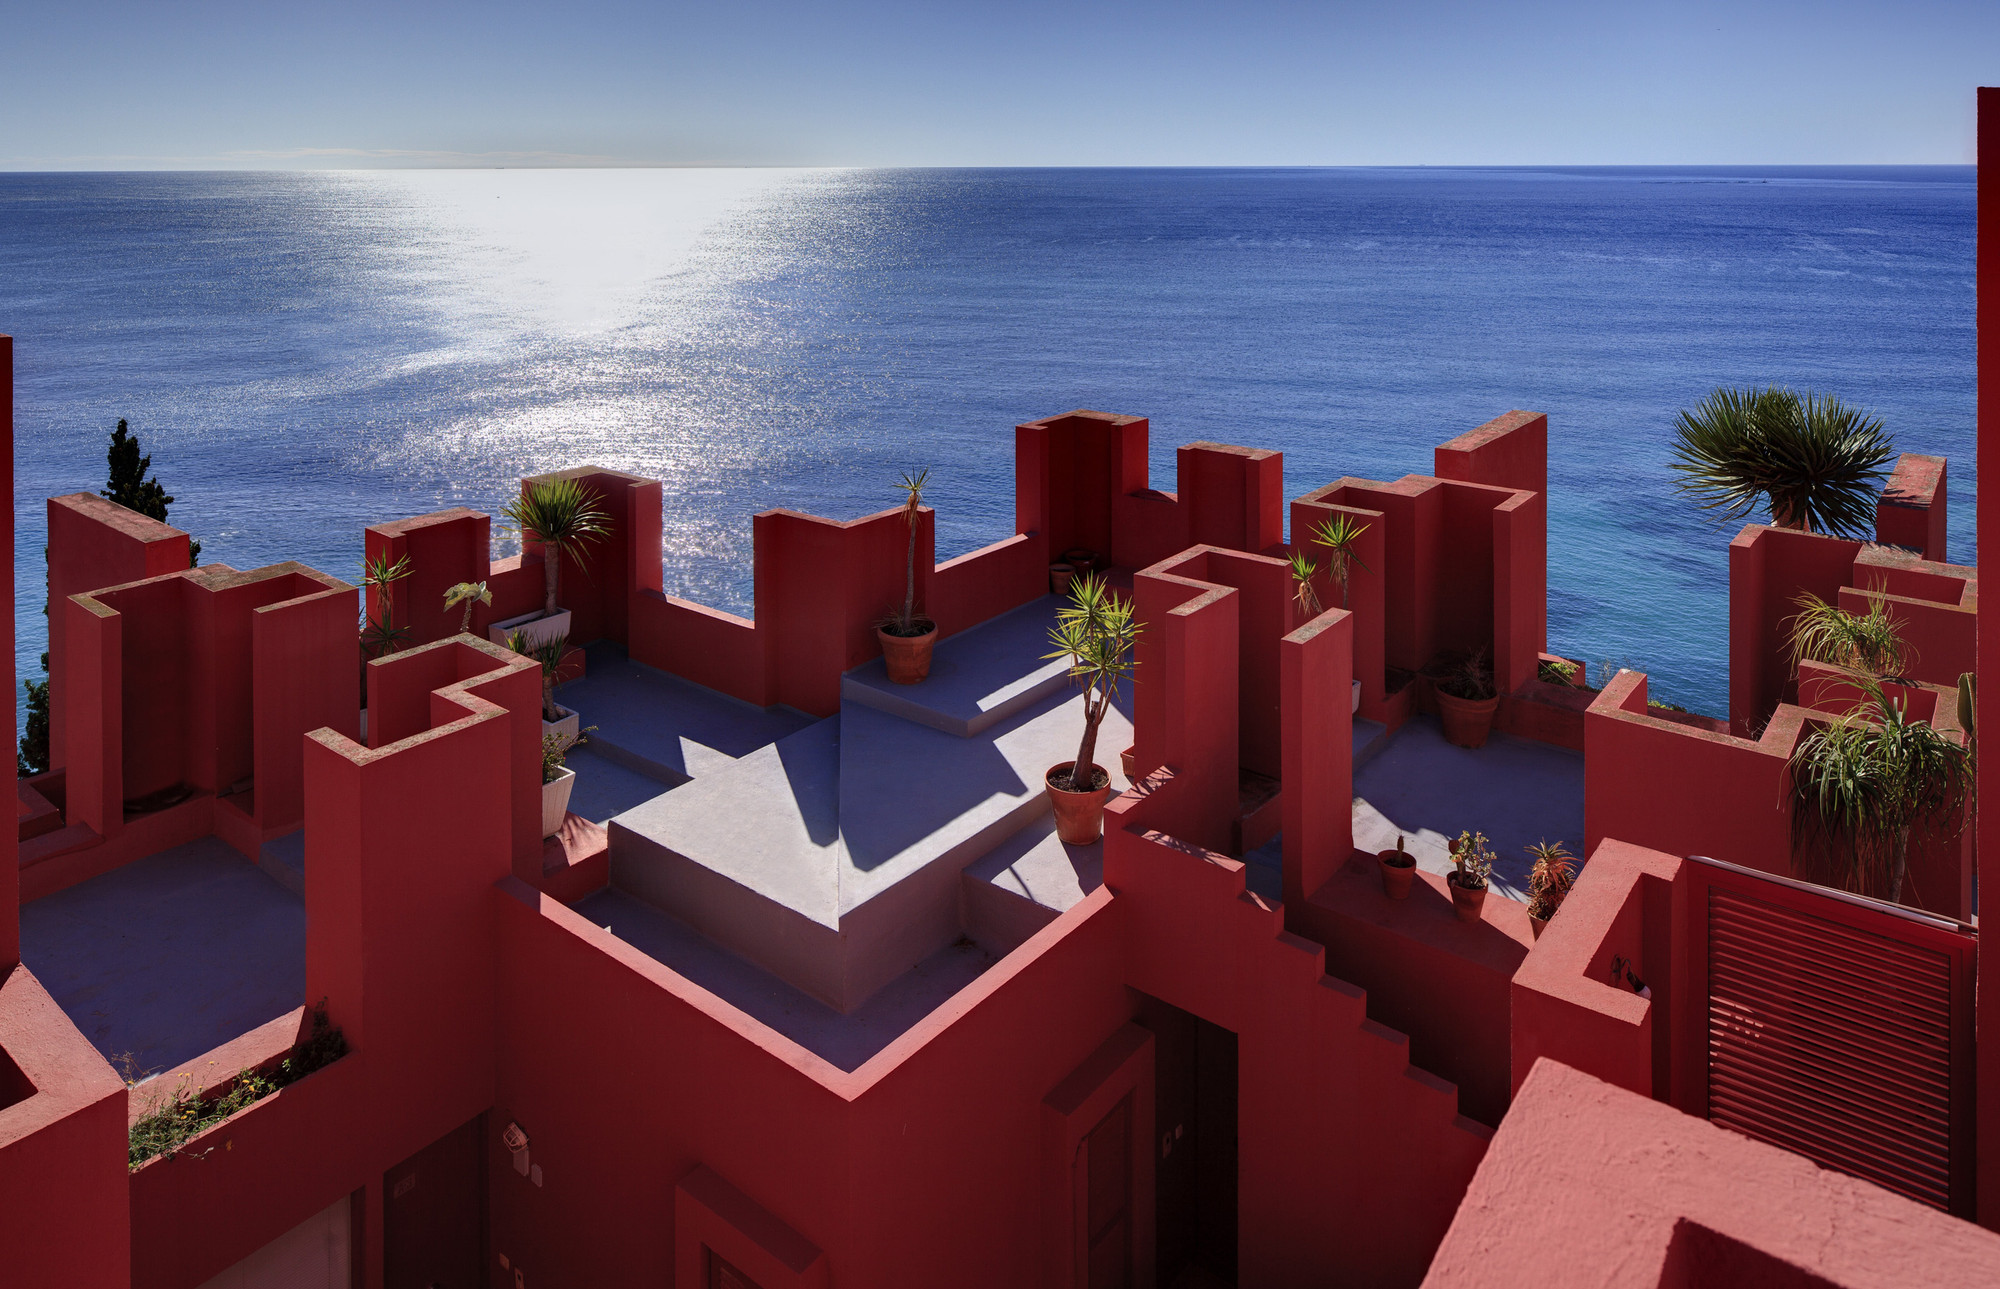 Photo Courtesy of Ricardo Bofill